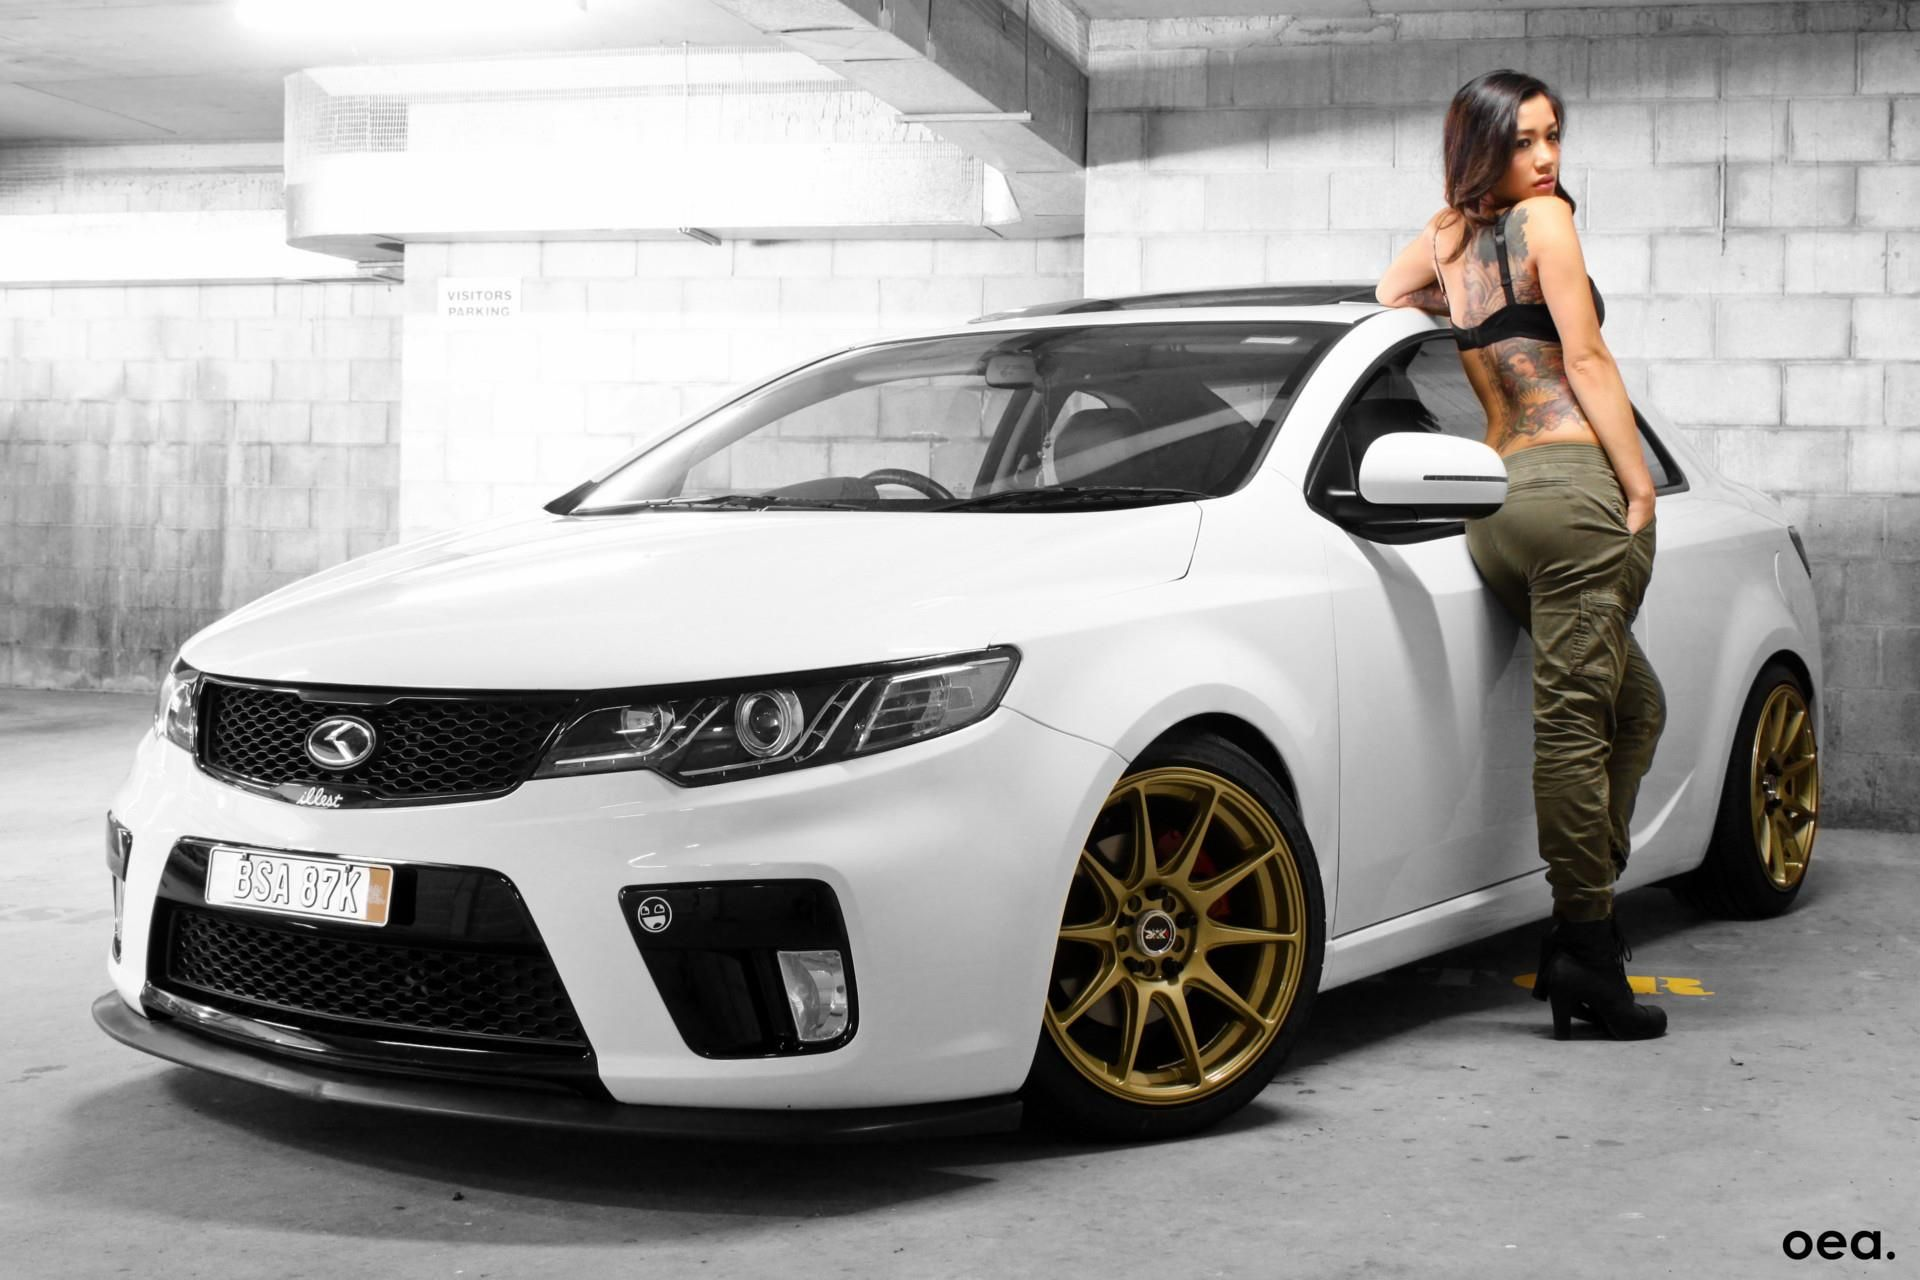 kia motorsports sale for sx forte product koup ansa